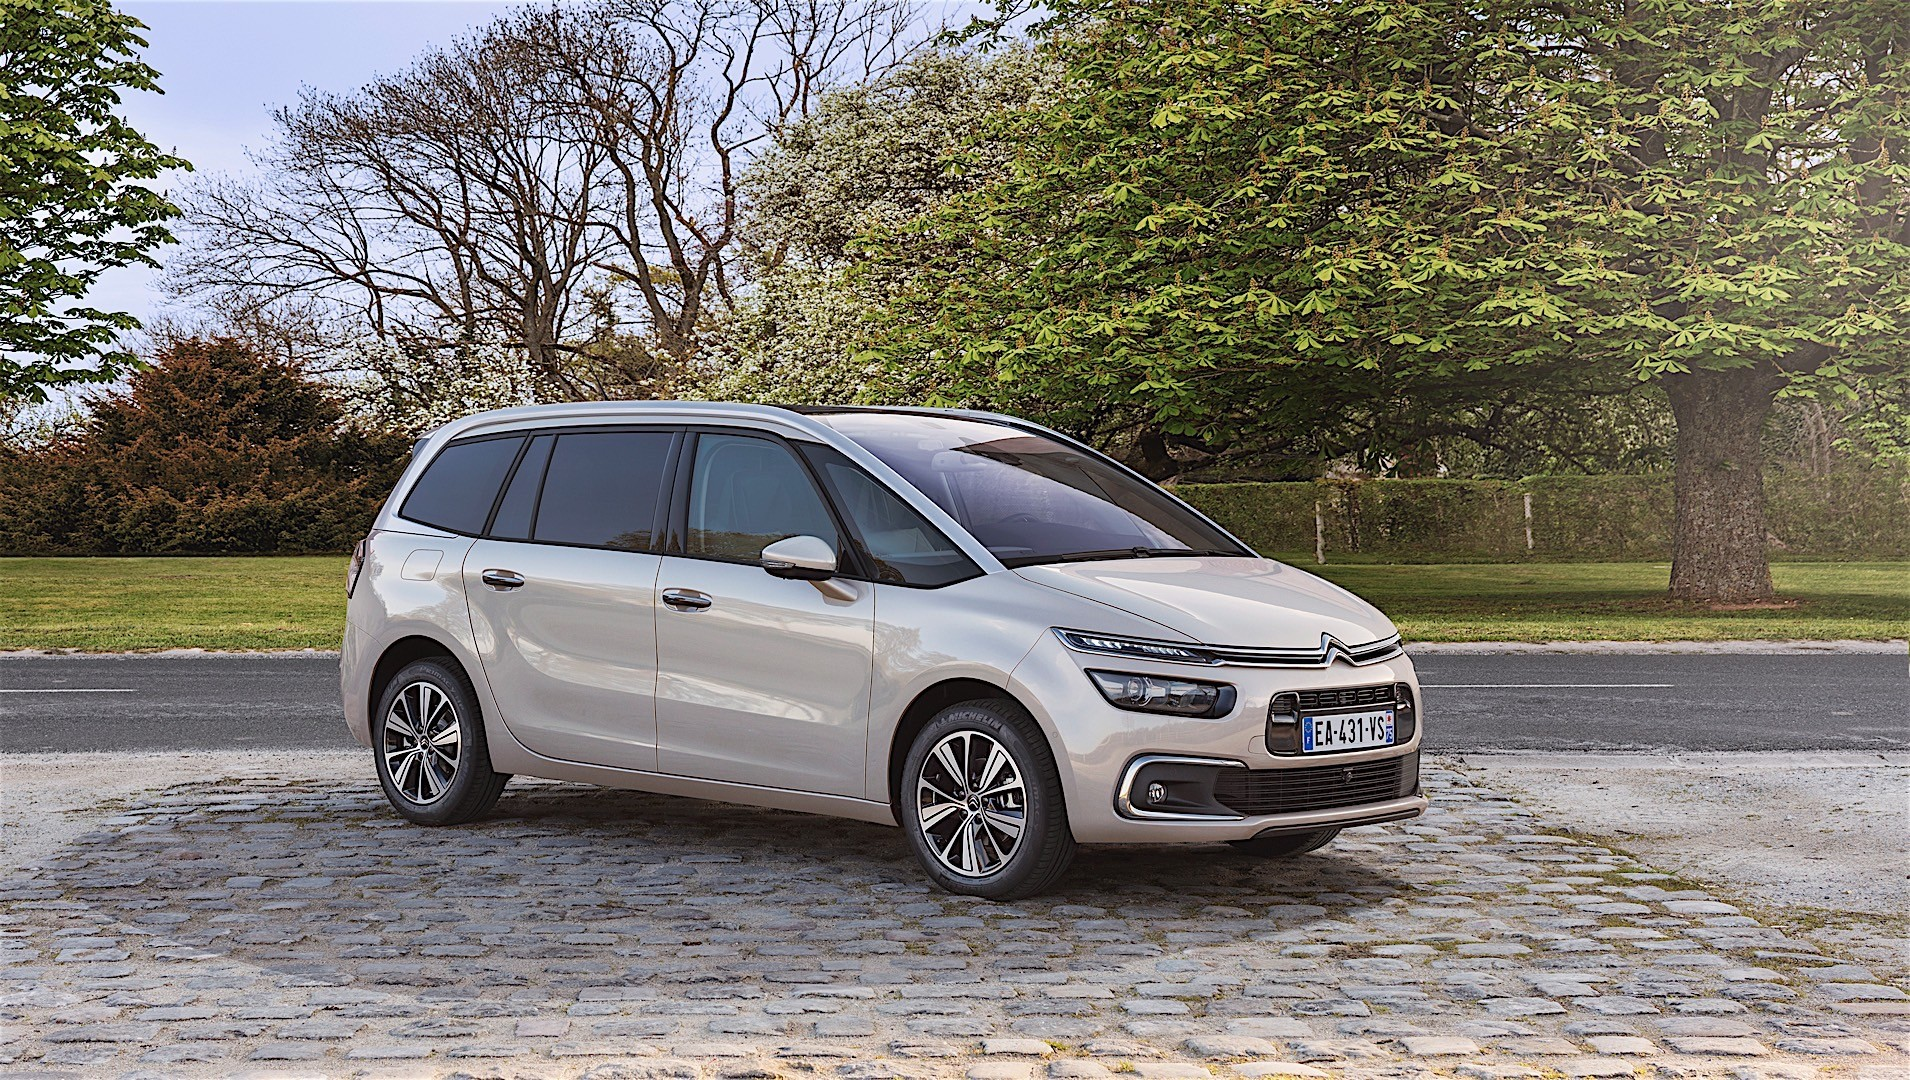 citroen grand c4 picasso specs 2016 2017 2018. Black Bedroom Furniture Sets. Home Design Ideas